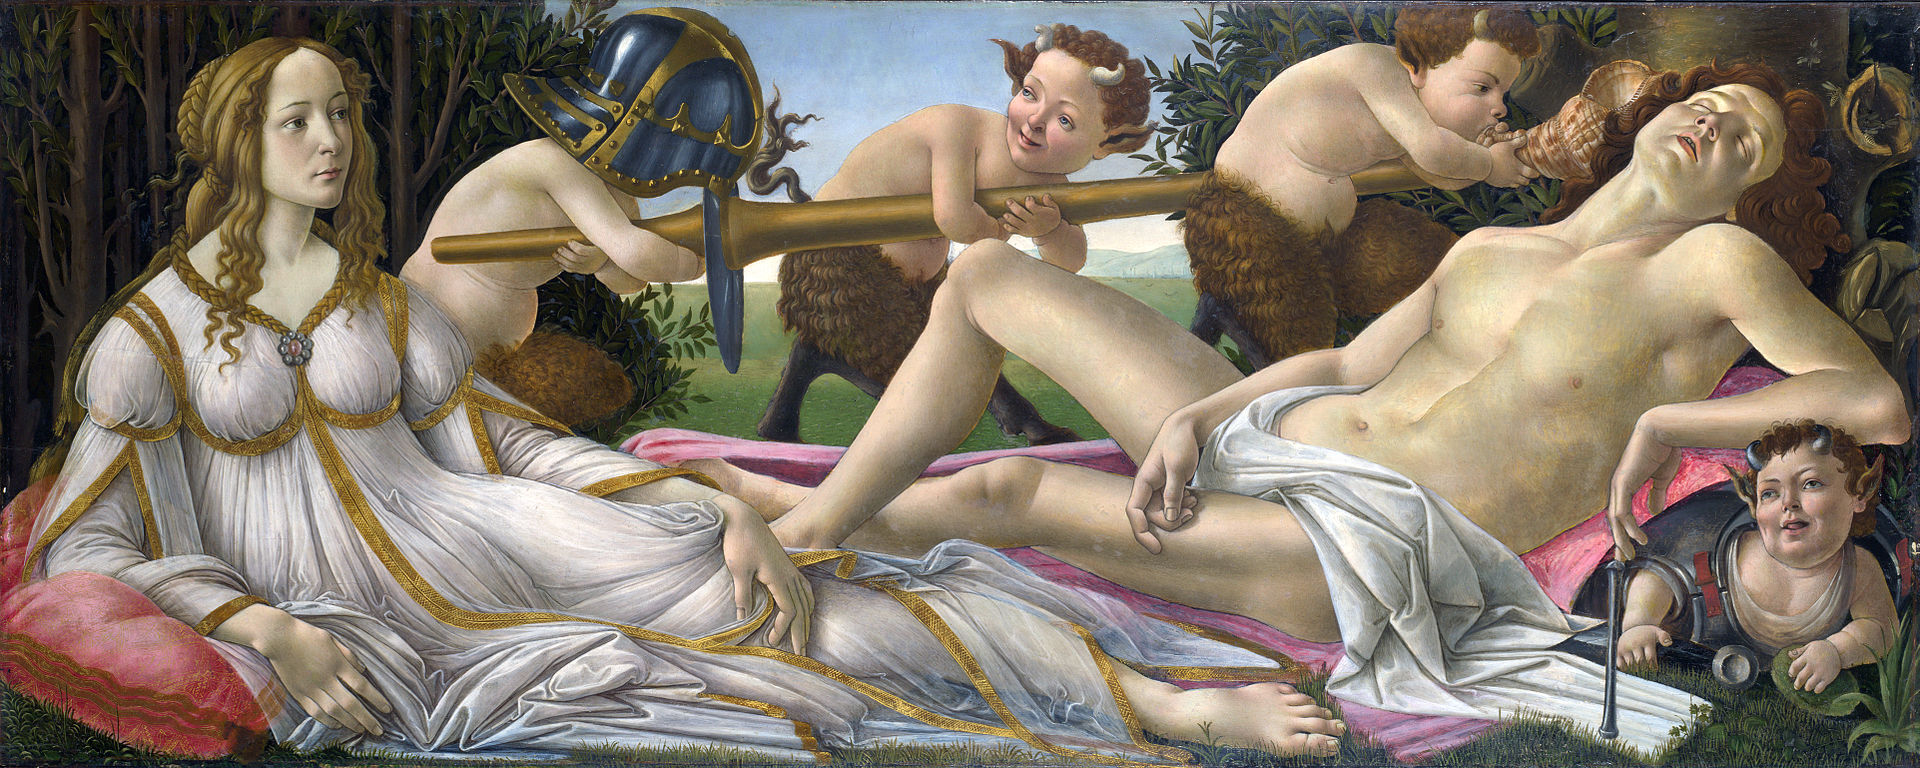 Venus and Mars, Botticelli